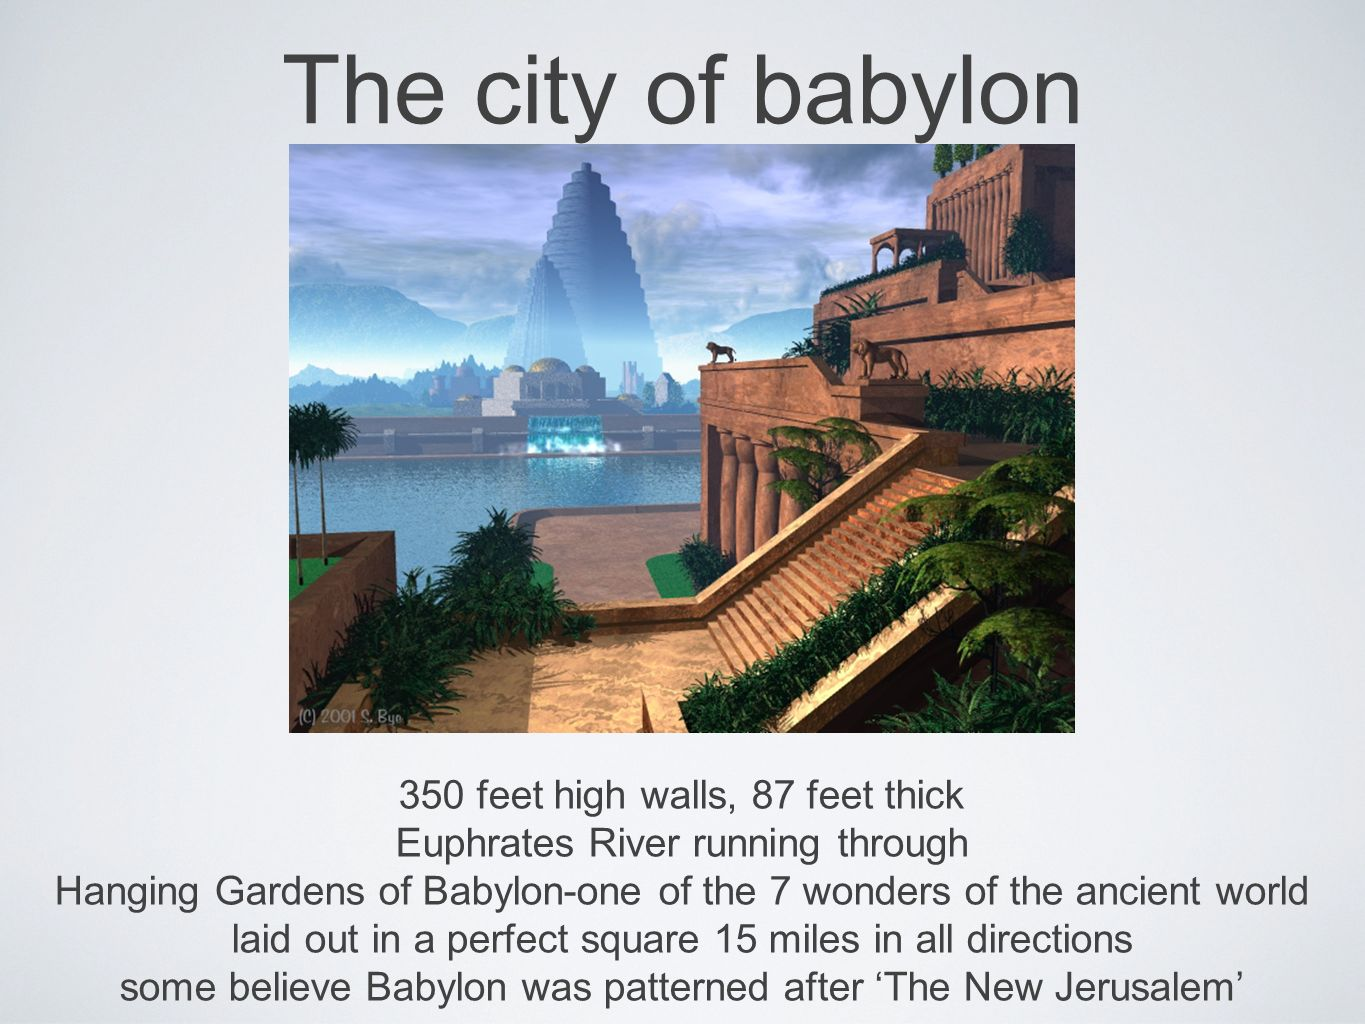 The city of babylon 350 feet high walls, 87 feet thick